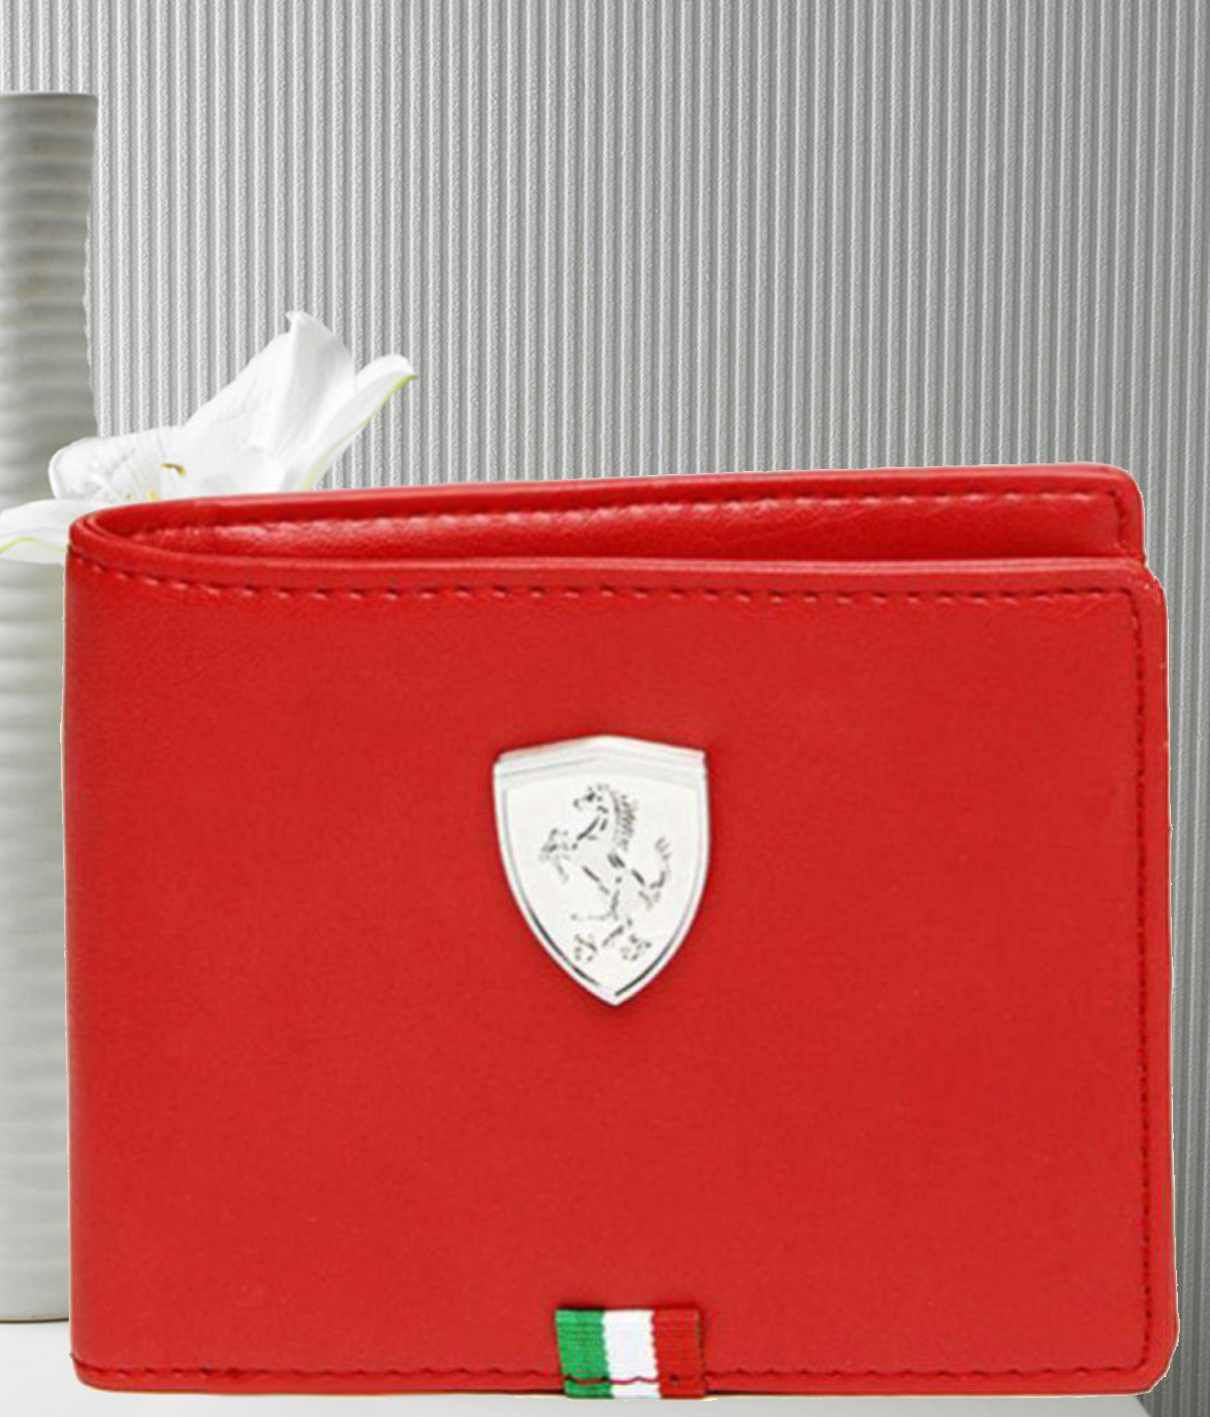 e062018c35 Puma F1 Leather Red Casual Regular Wallet: Buy Online at Low Price in India  - Snapdeal